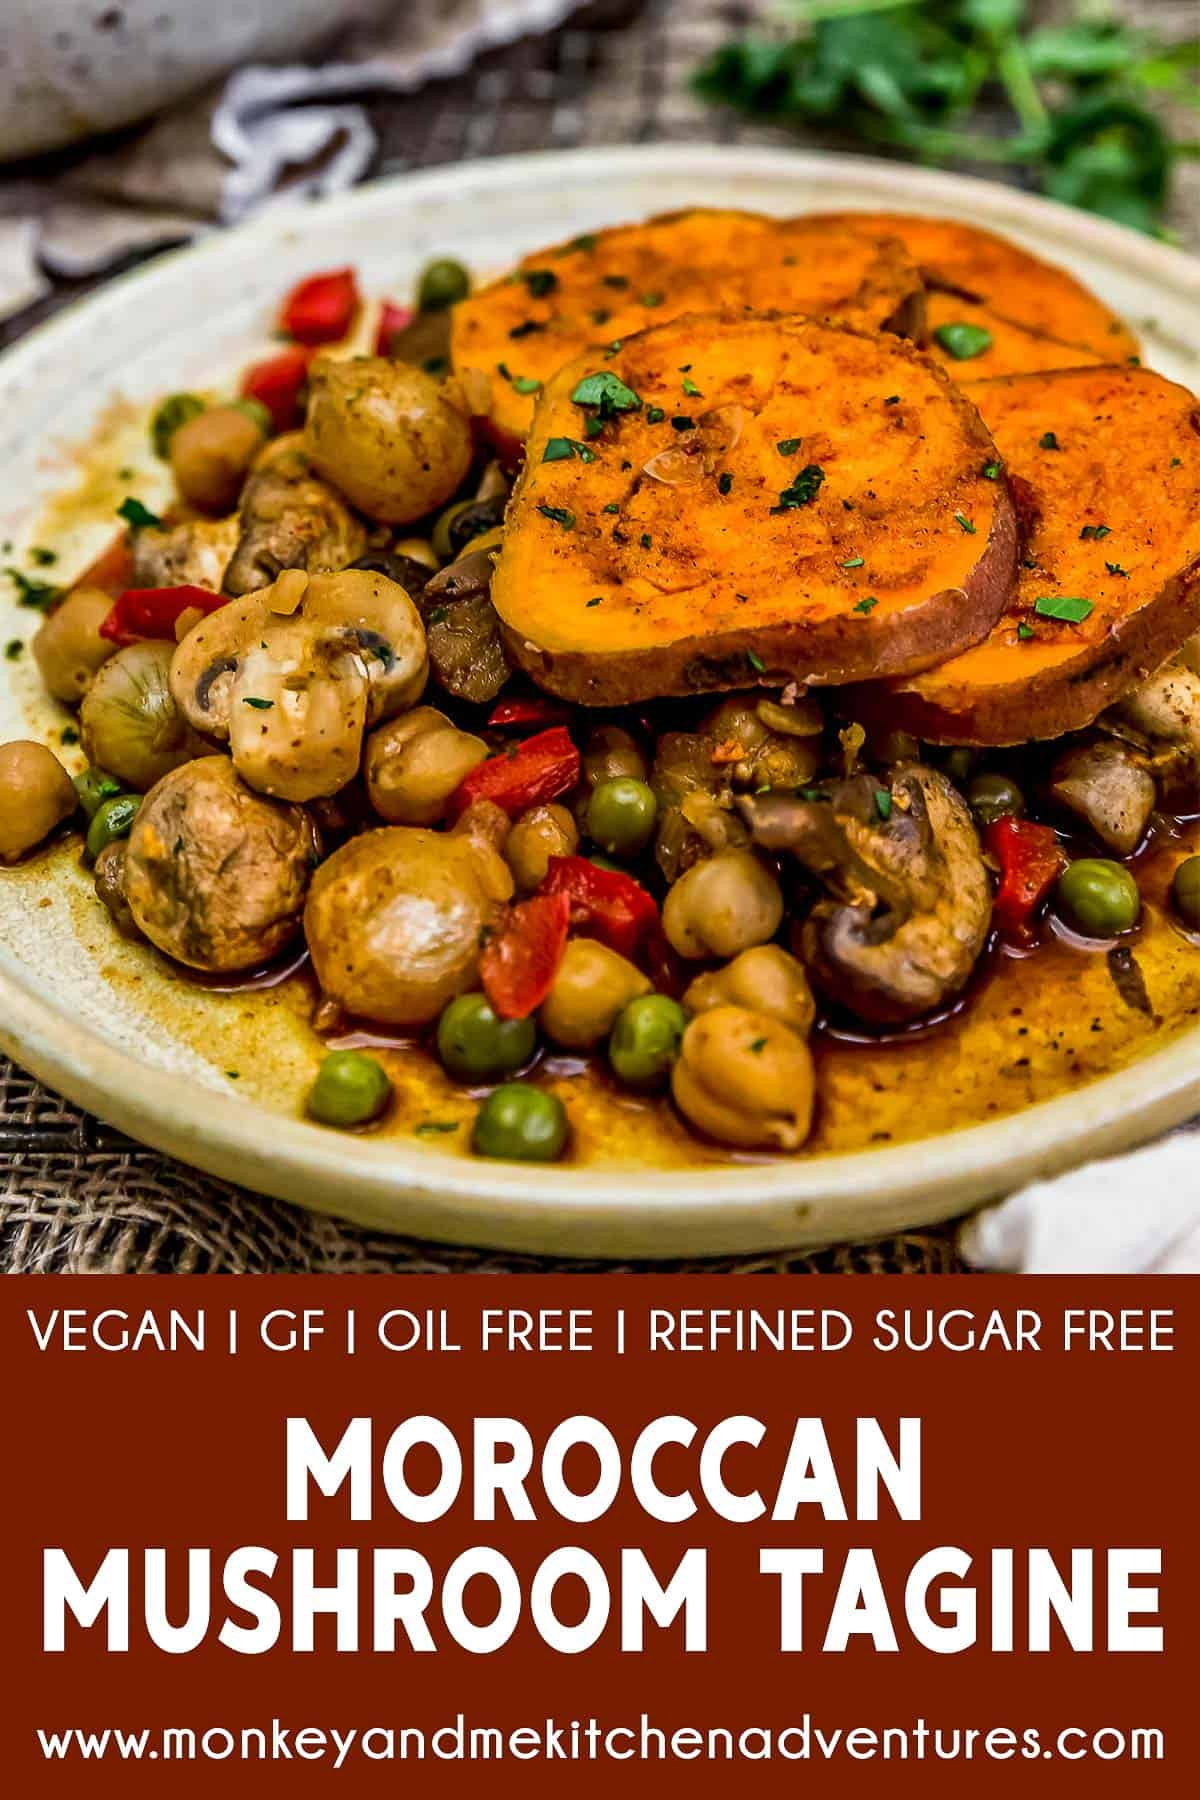 Moroccan Mushroom Tagine with text description